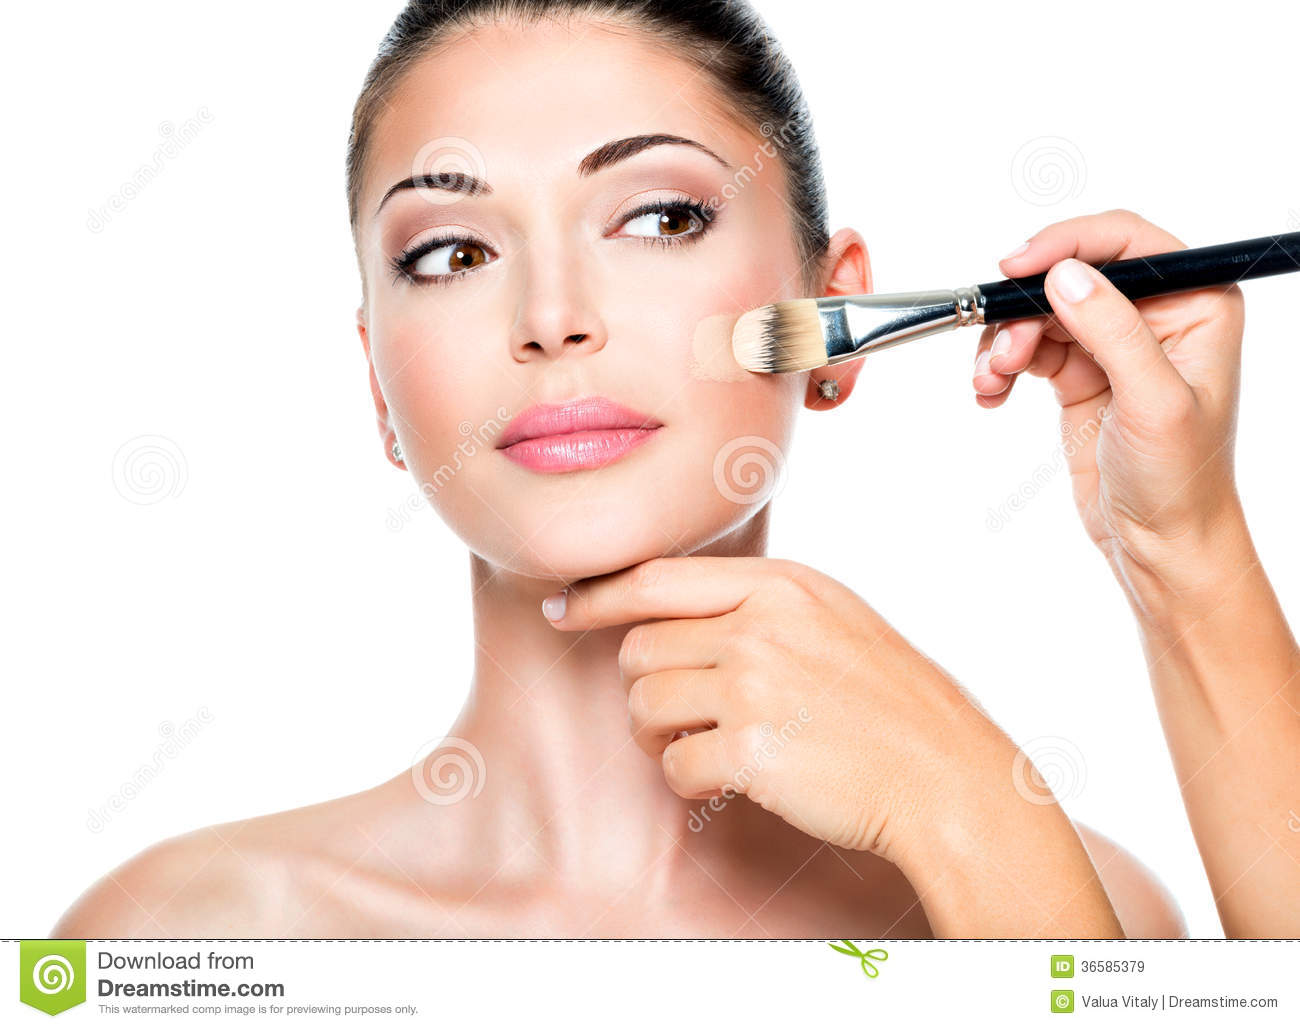 How to apply the tonal foundation on the face correctly: video and step-by-step instructions for applying the foundation with fingers, sponge and brush to mask skin imperfections and wrinkles 41